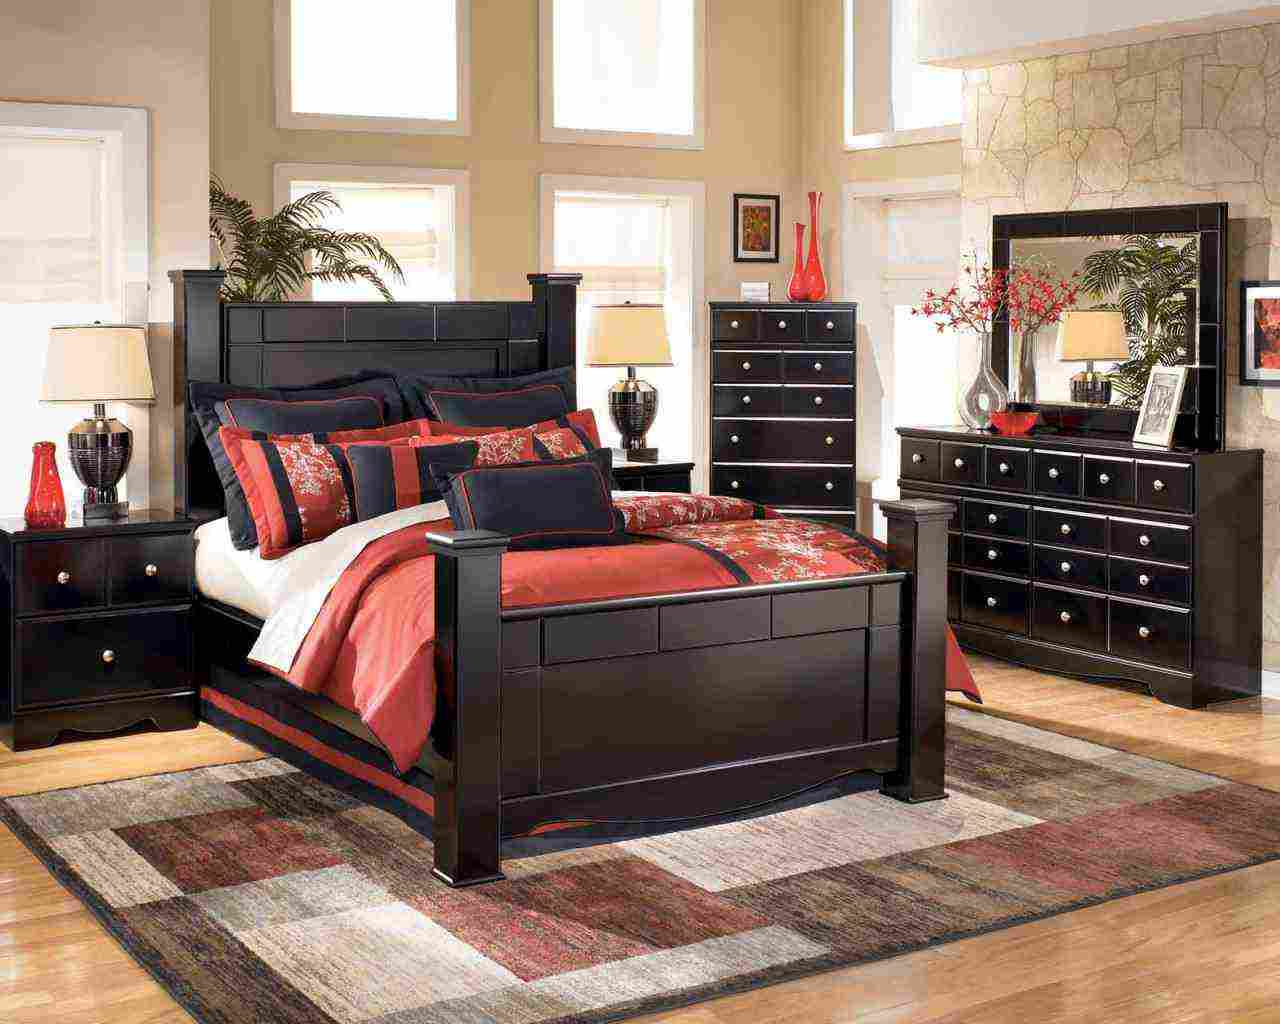 black-wood-bedroom-furniture